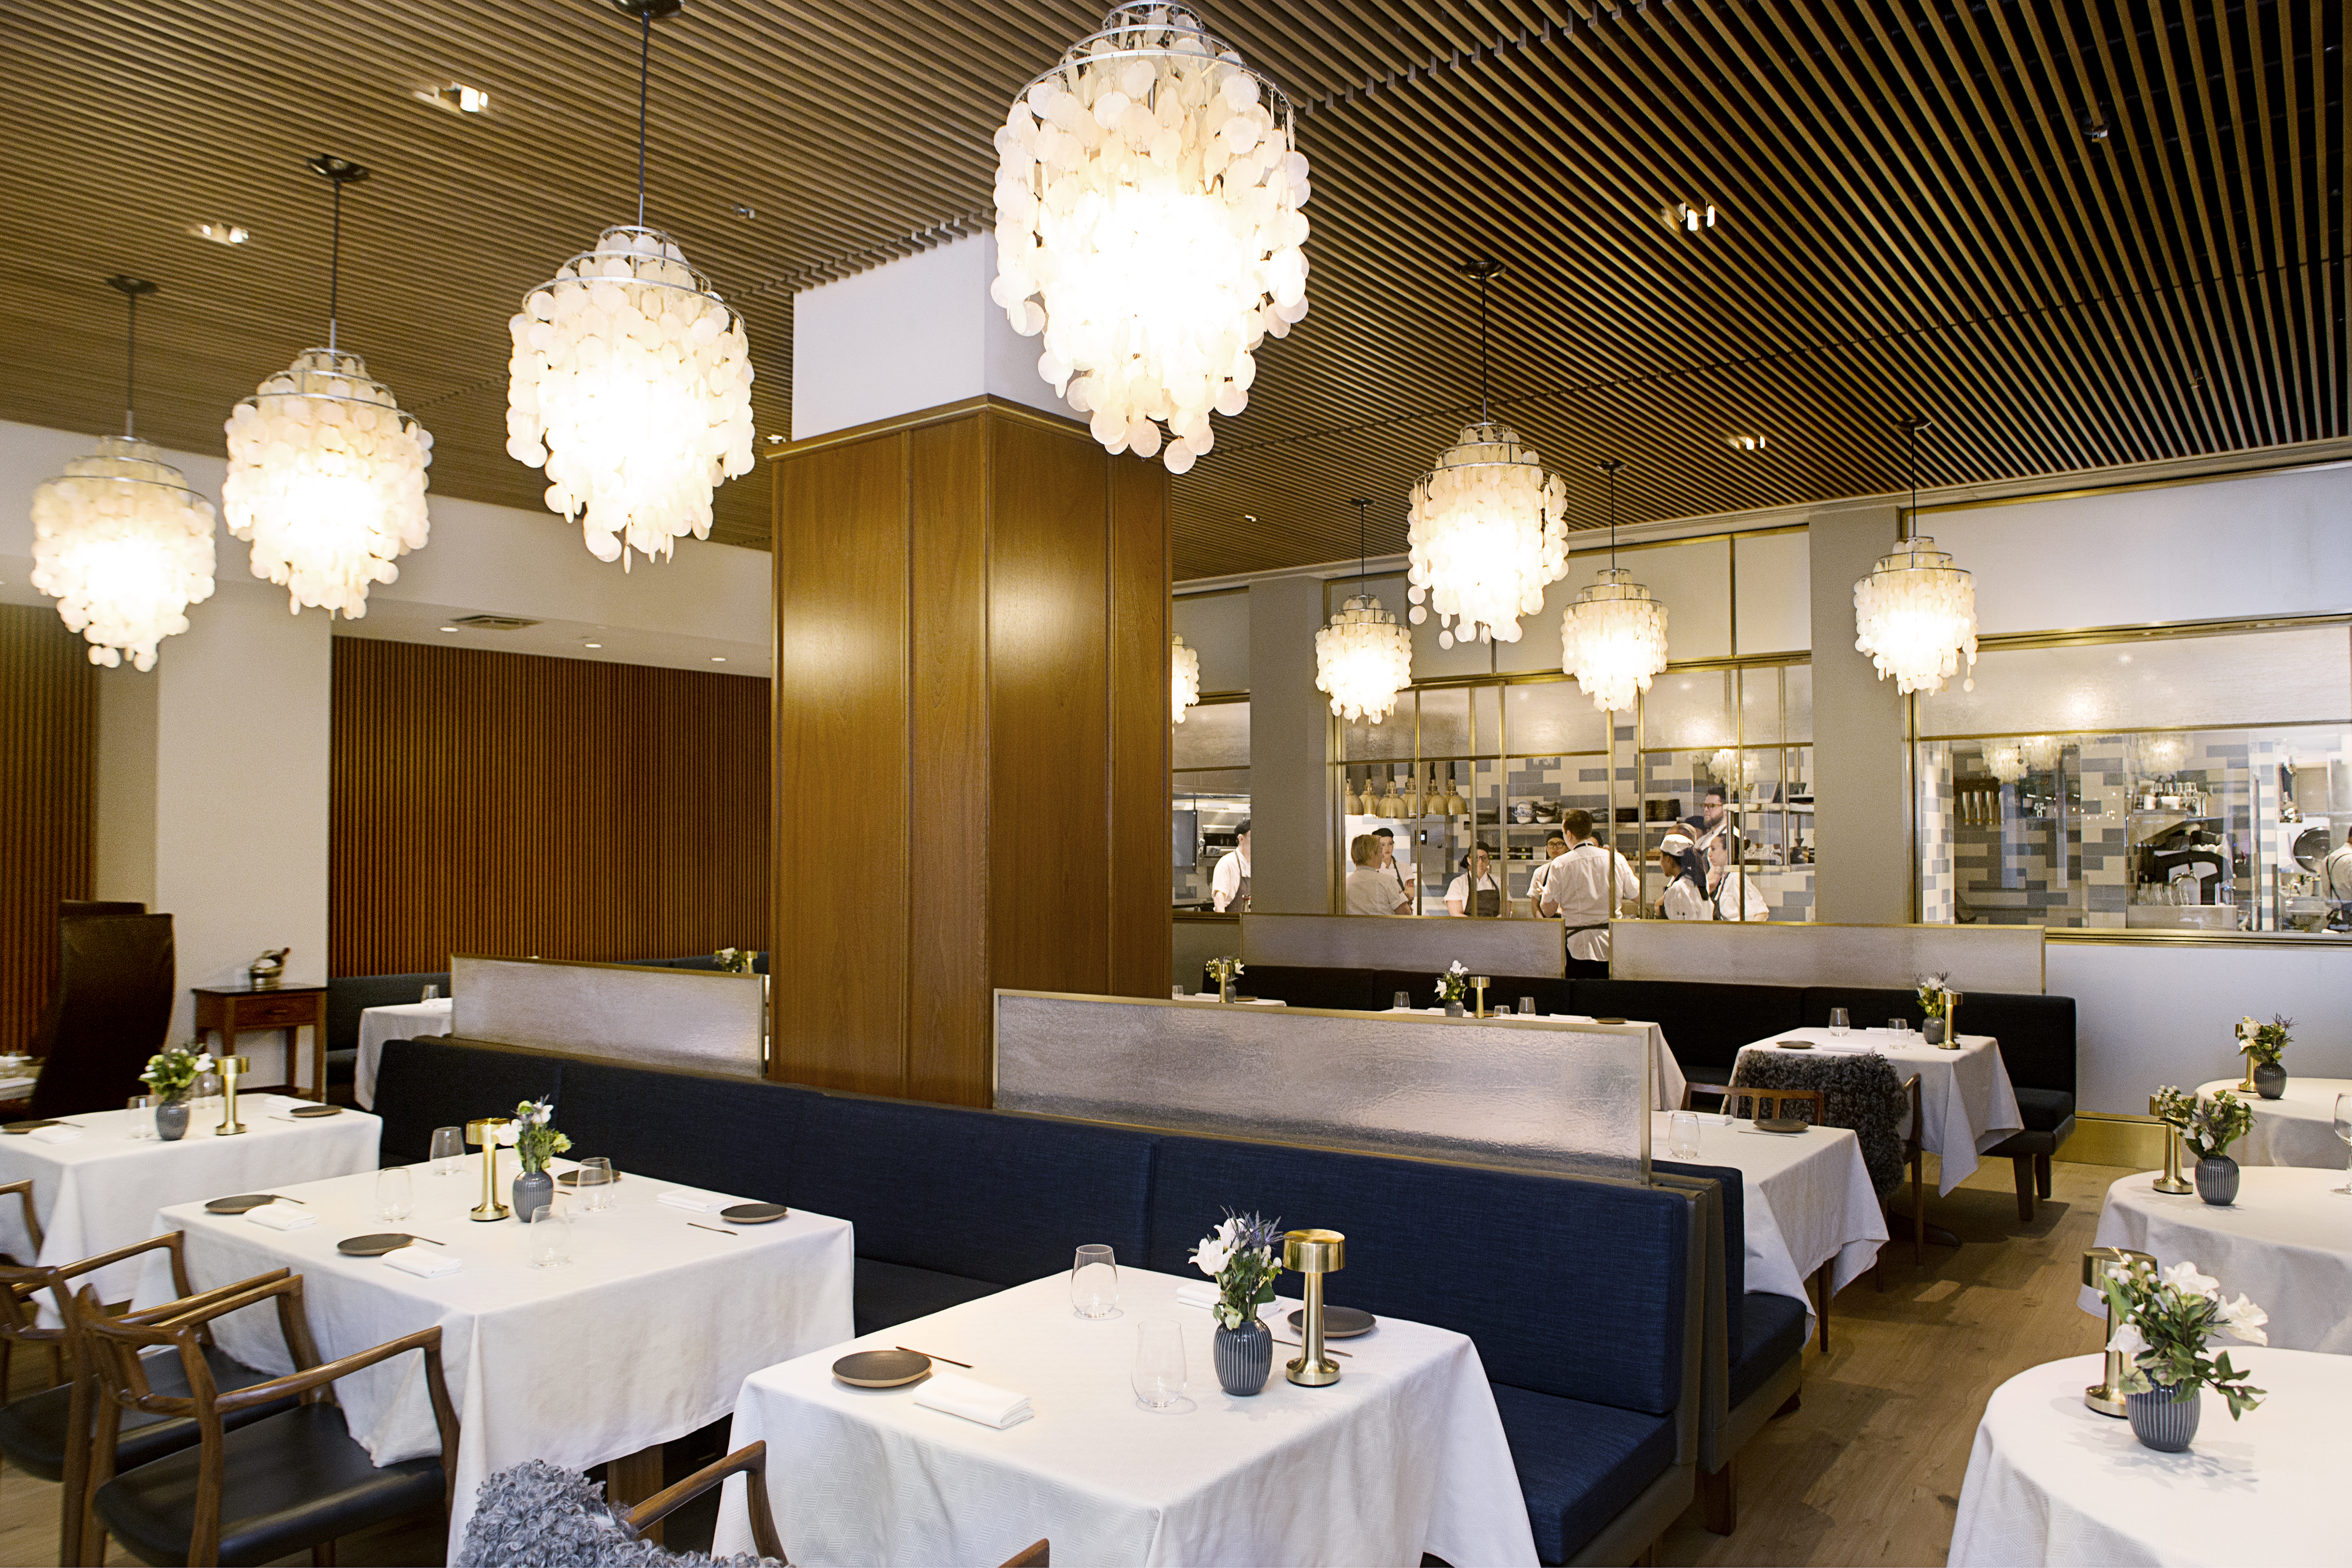 A dining room with white tablecloths, banquettes, and white chandeliers.